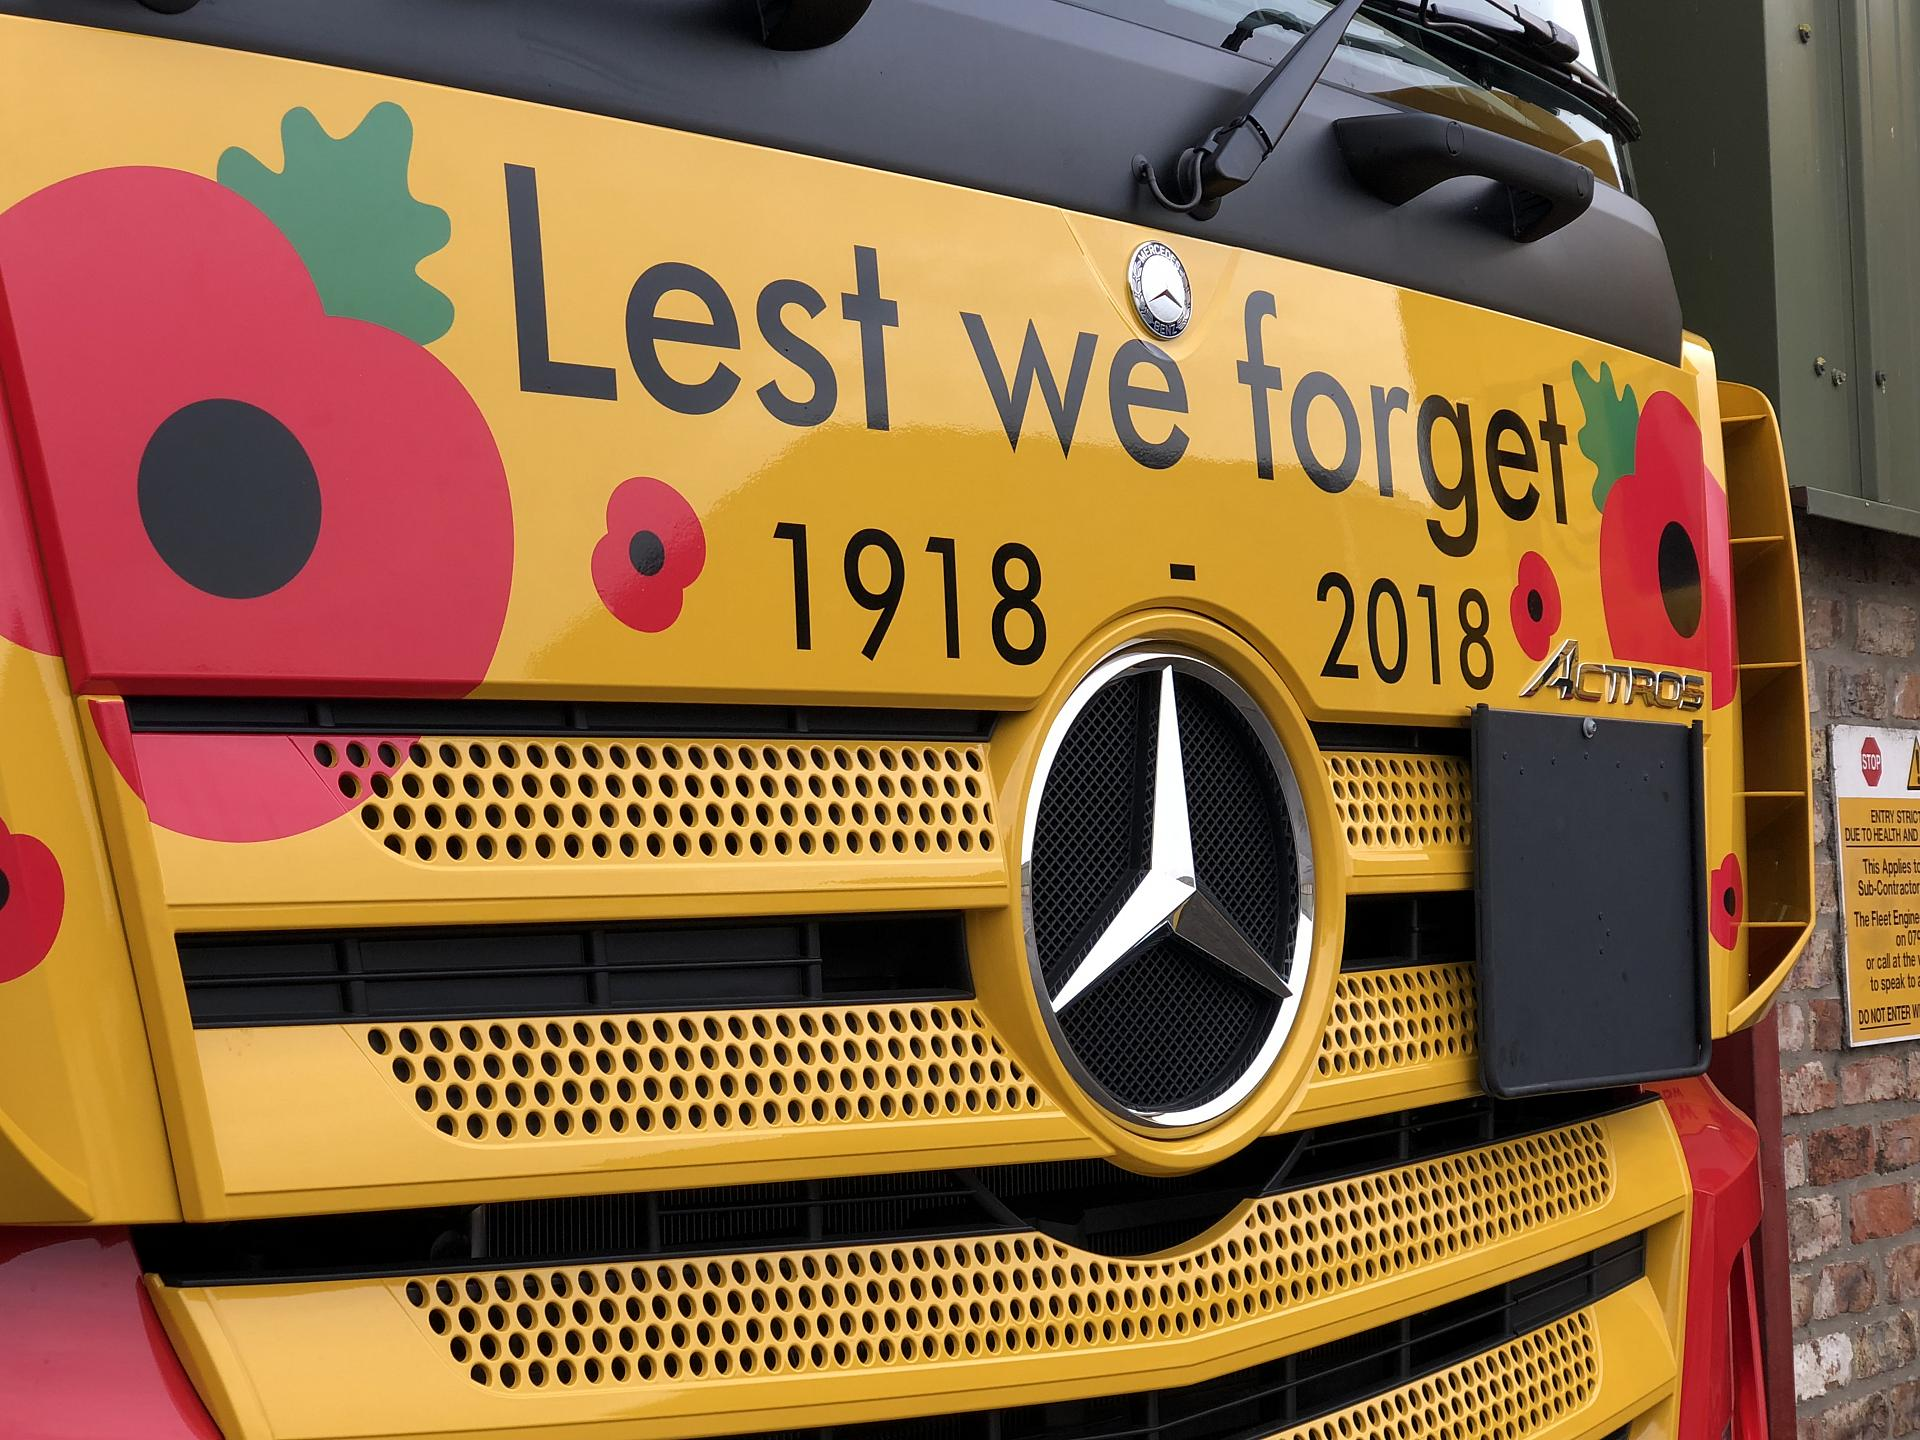 WW1 Centenary truck supporting Help for Heroes plus exciting competition to win a WW1 tour of the Battlefields for 2 people